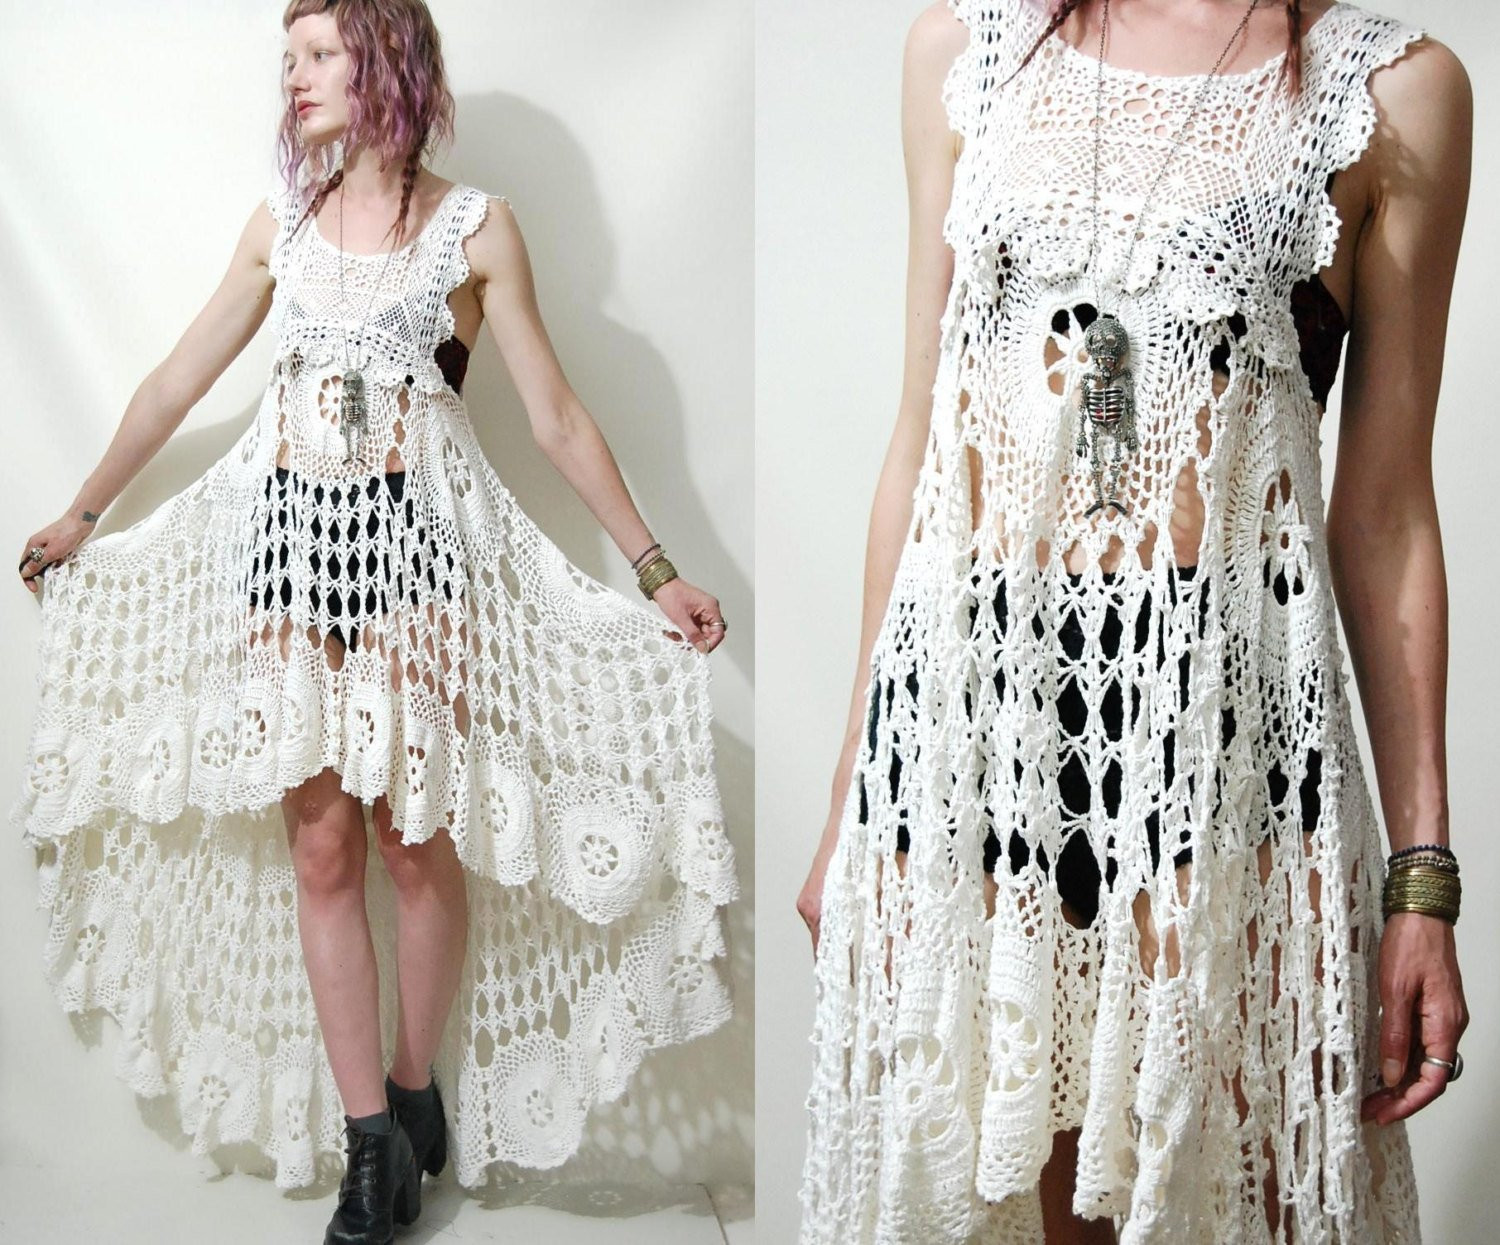 White Lace Crochet Dress Inspirational Crochet Dress Vintage Lace White Fishtail Train Bohemian Of Awesome 48 Photos White Lace Crochet Dress